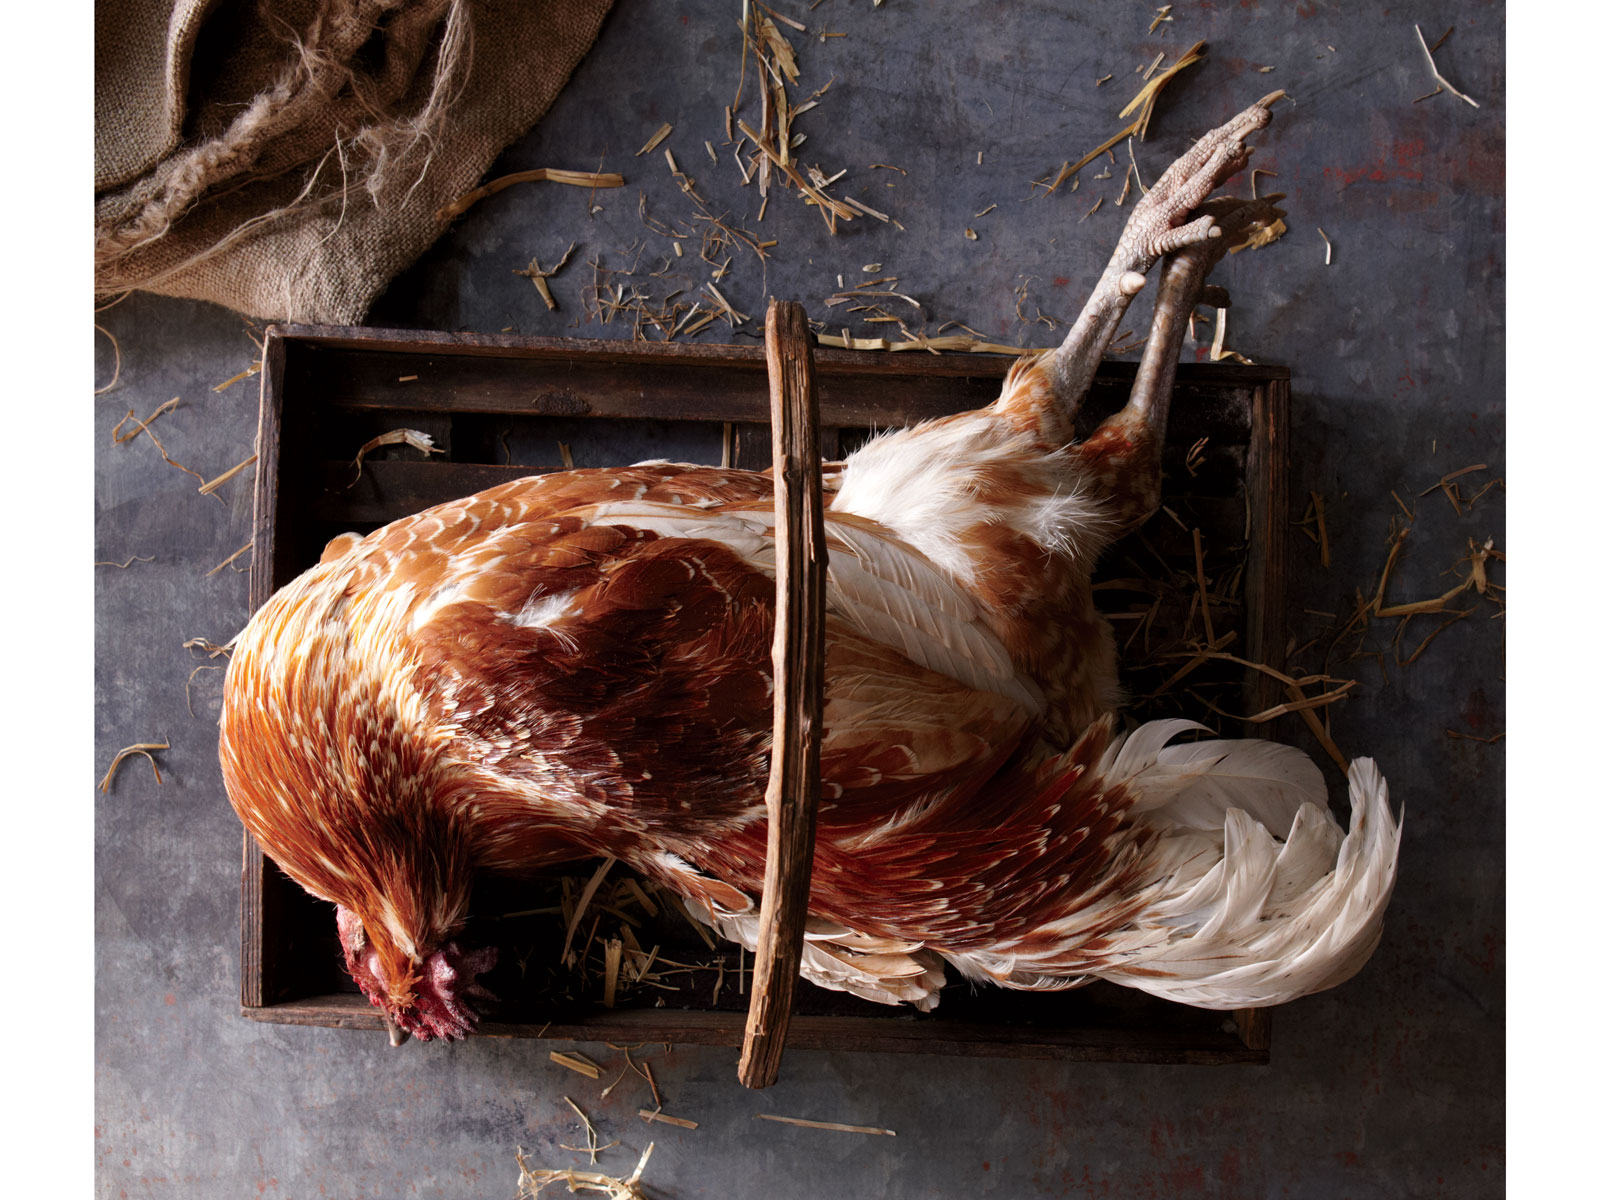 Small Farm Chicken at Buvette, 2014